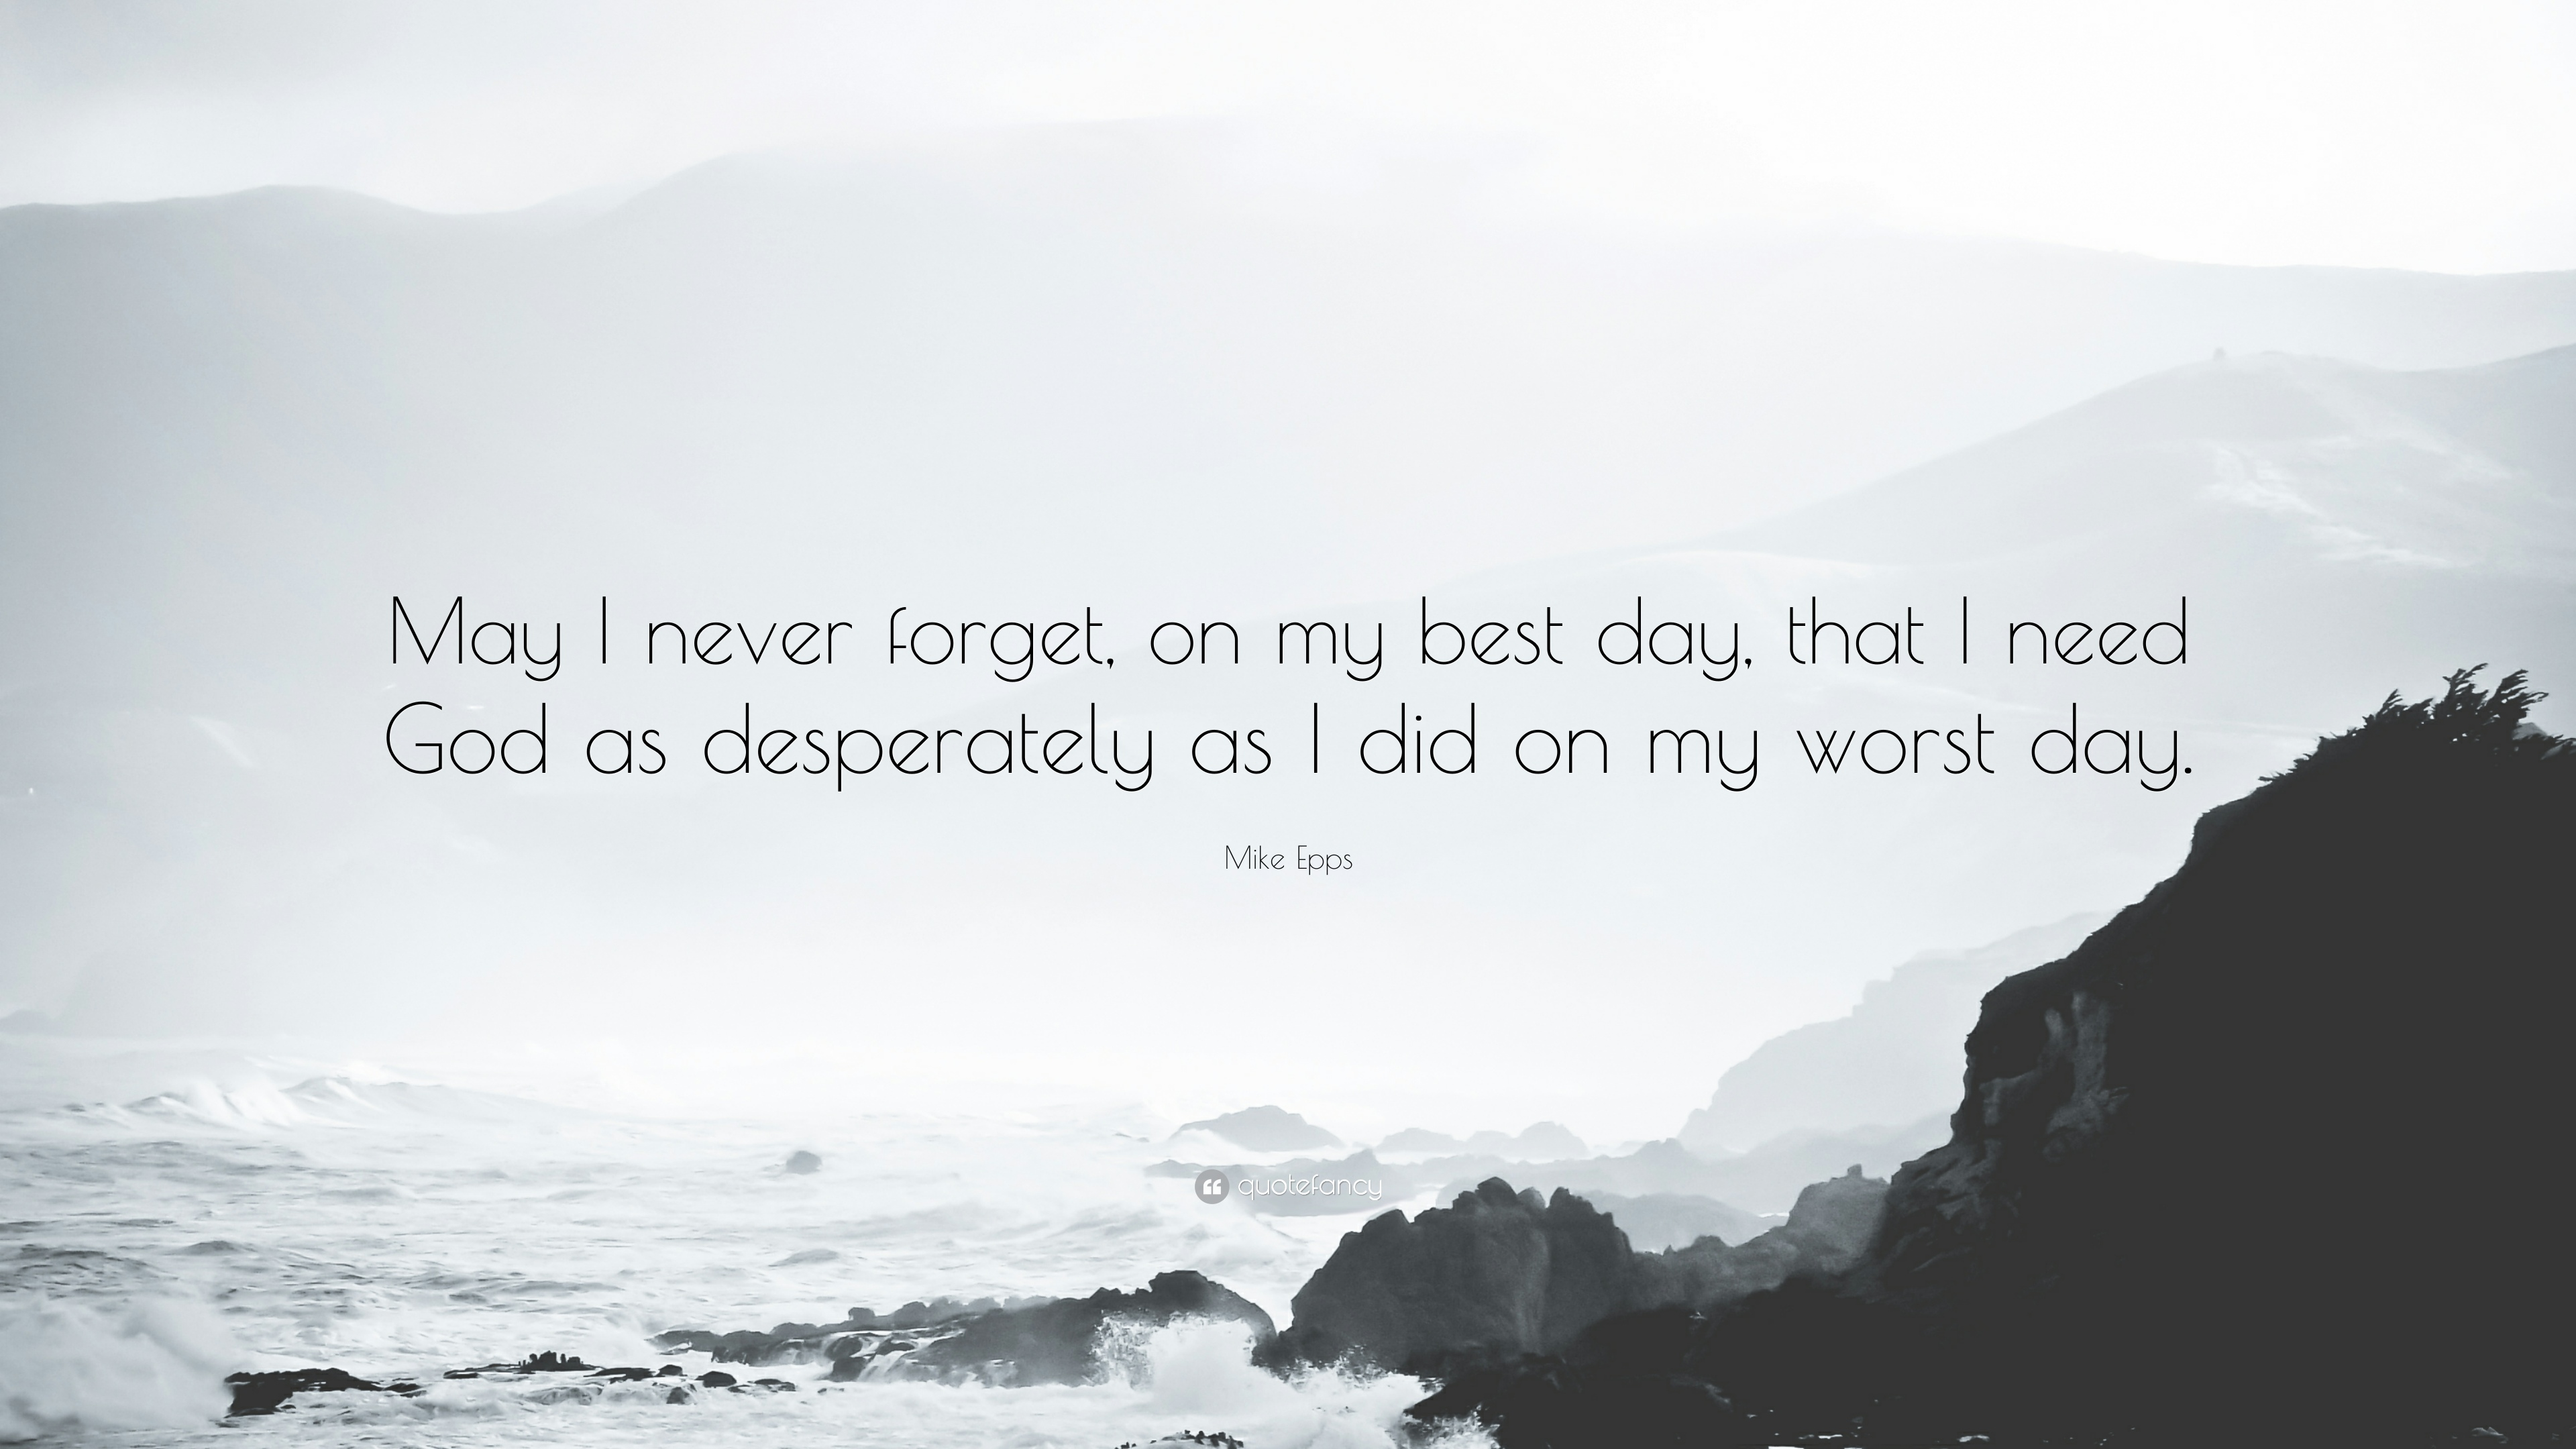 Mike Epps Quote May I Never Forget On My Best Day That I Need God As Desperately As I Did On My Worst Day 9 Wallpapers Quotefancy Character page for desperate housewives. mike epps quote may i never forget